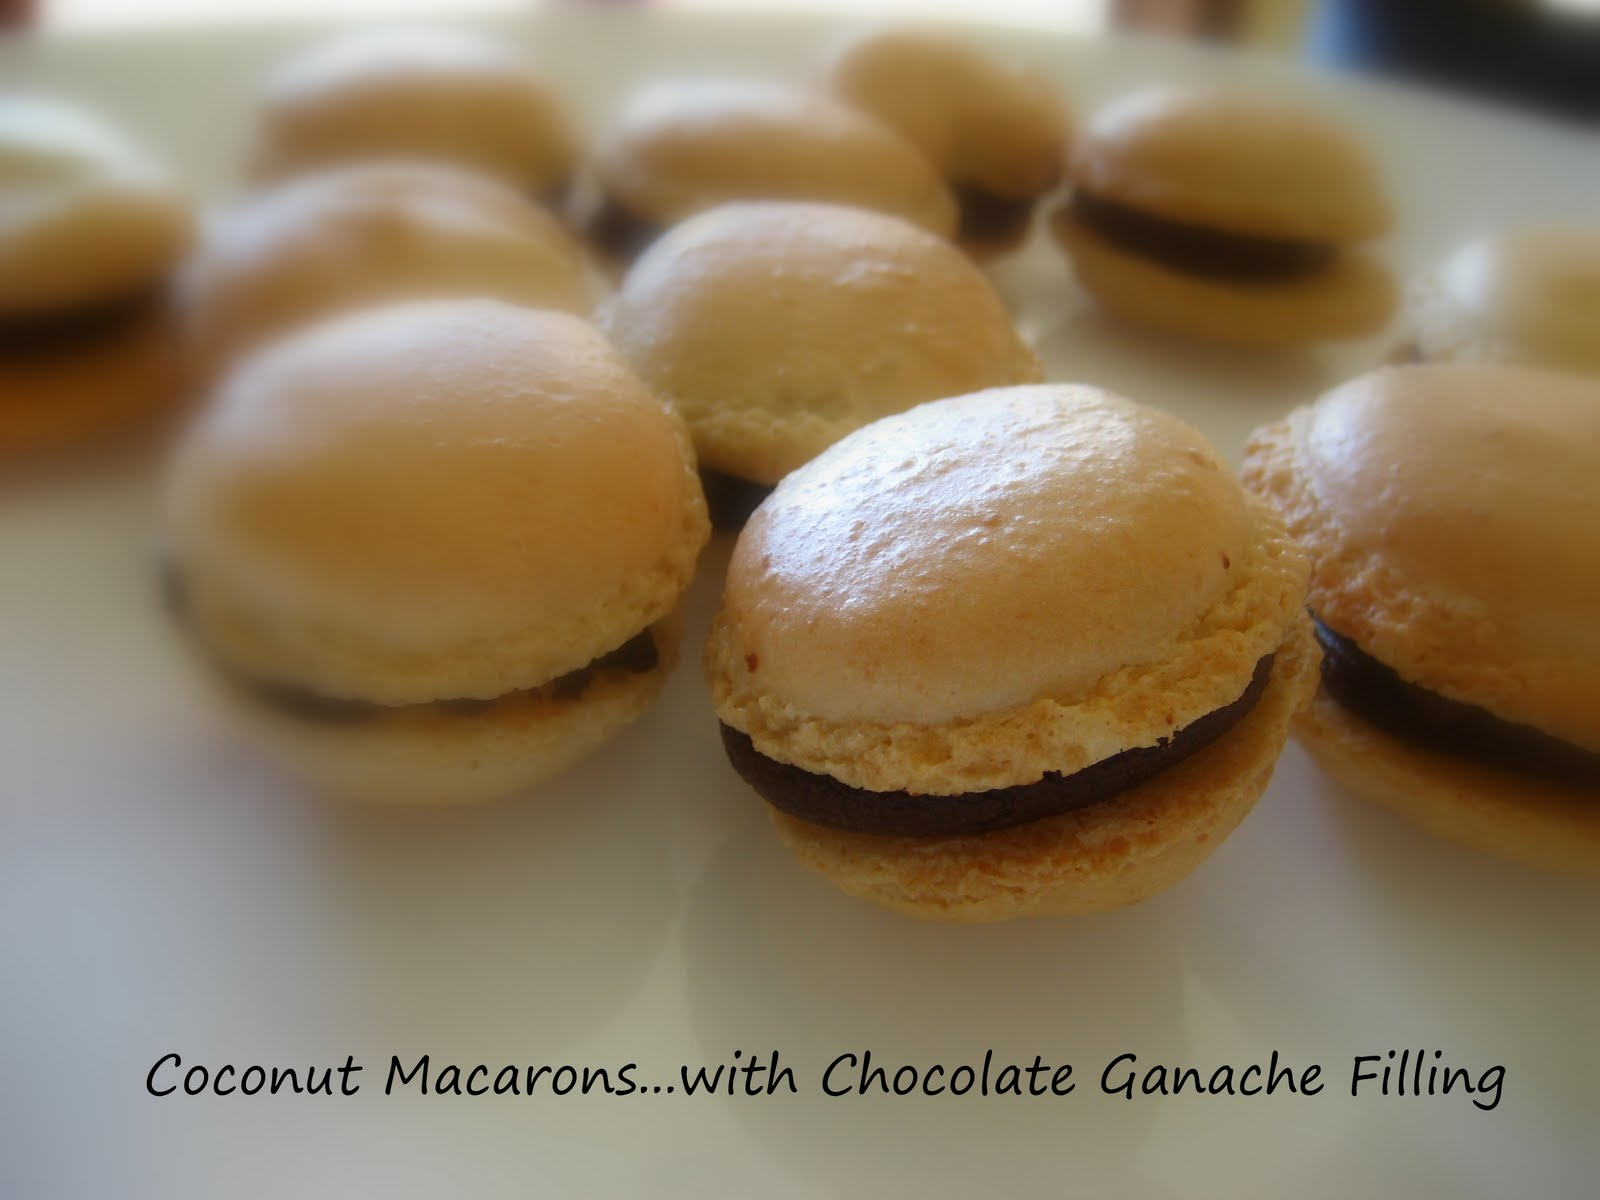 ... Cooking In Montana: Coconut French Macarons... with Chocolate Filling